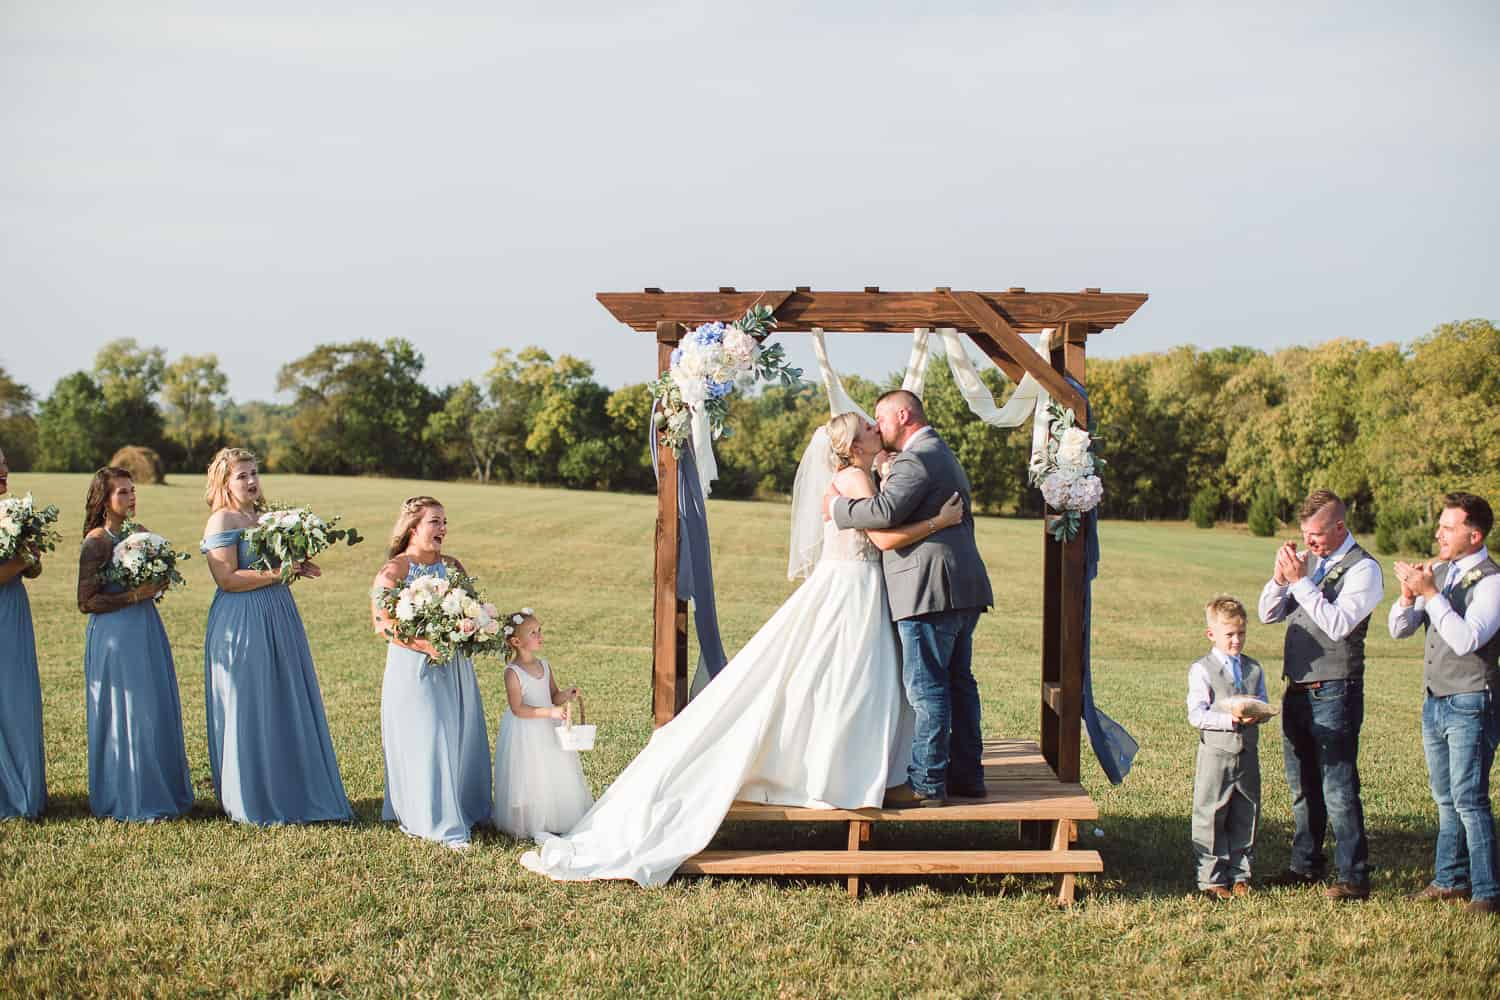 Outdoor wedding ceremony at private property in Kansas